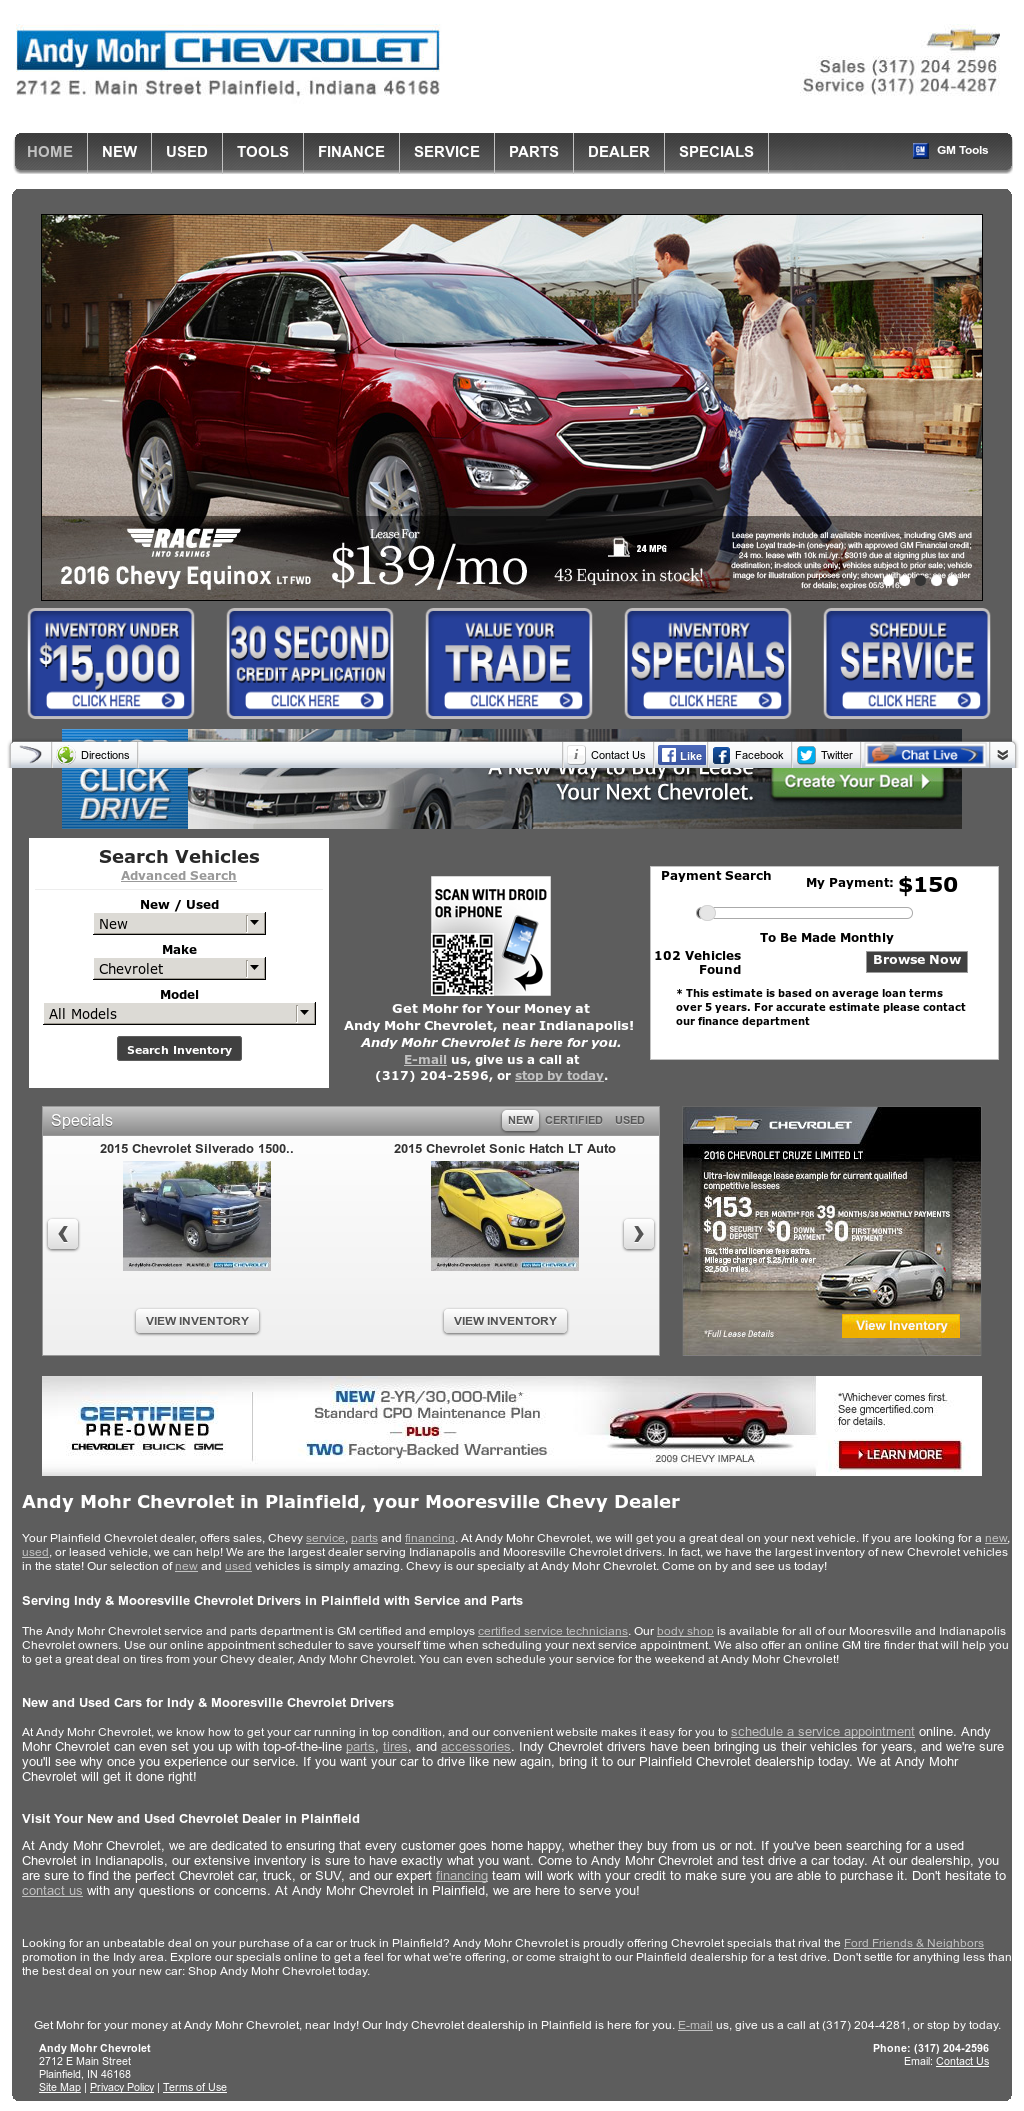 Andy Mohr Chevrolet Plainfield >> Andy Mohr Chevrolet Competitors Revenue And Employees